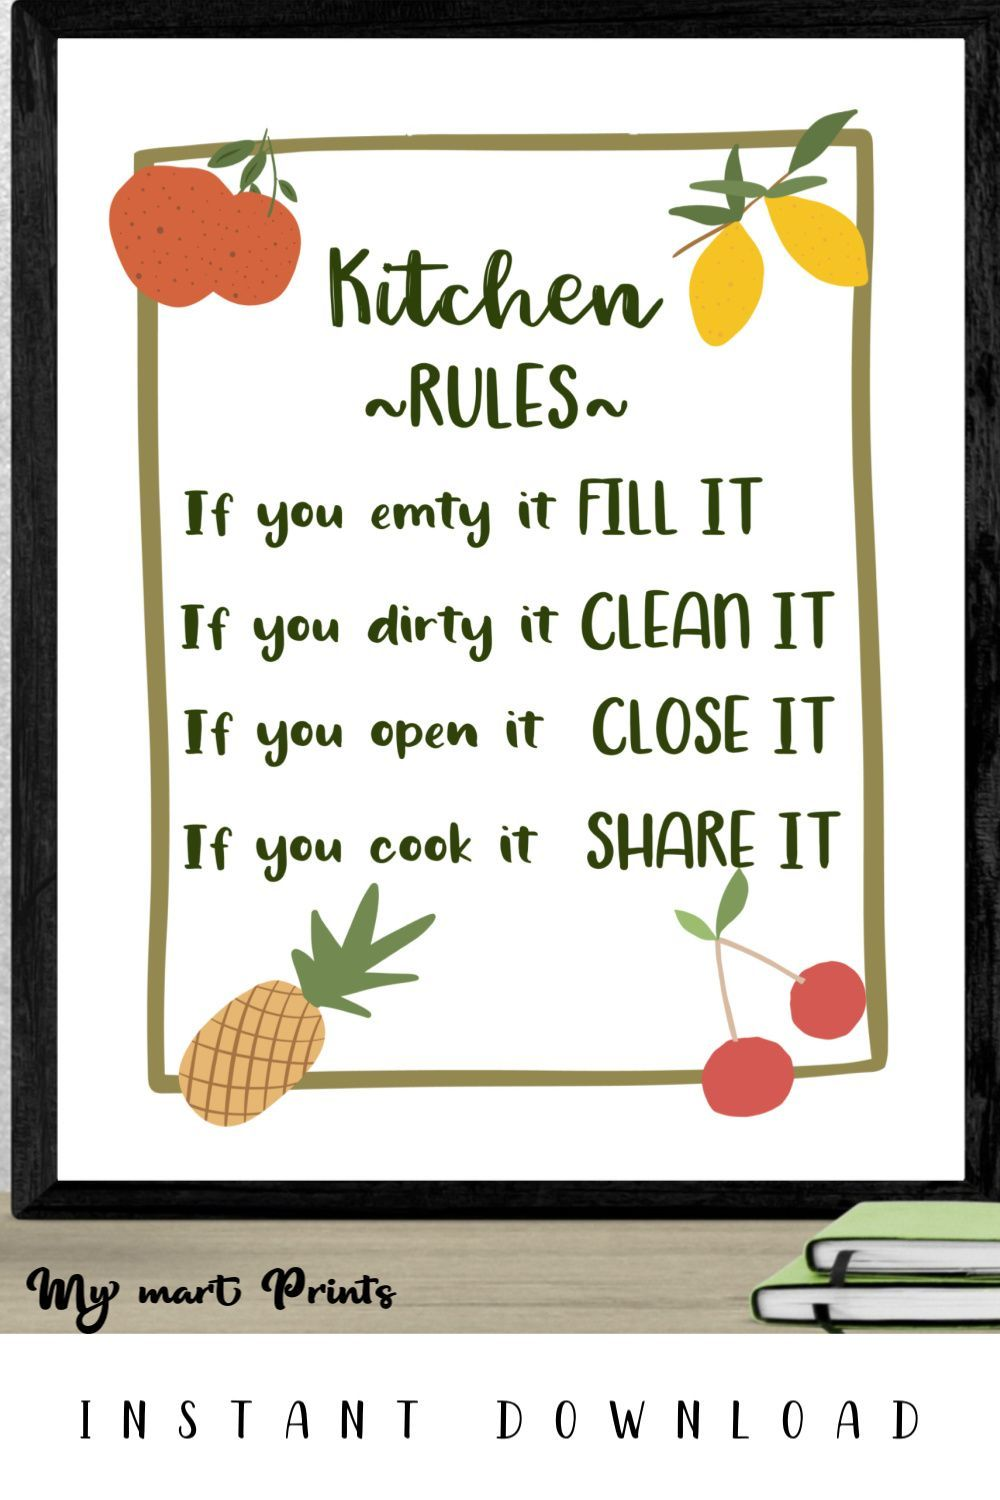 Kitchen Rules Sign Printable Wall Decor With Fruits, Kitchen Print, Earth Colors Fruits Wall Art  #kitchenrules Available immediately after purchase. You may print this file anywhere you choose - your printer at home, a photo developer, or a professional printing resource. Save money and print it yourself as many times as you want. #kitchenrules